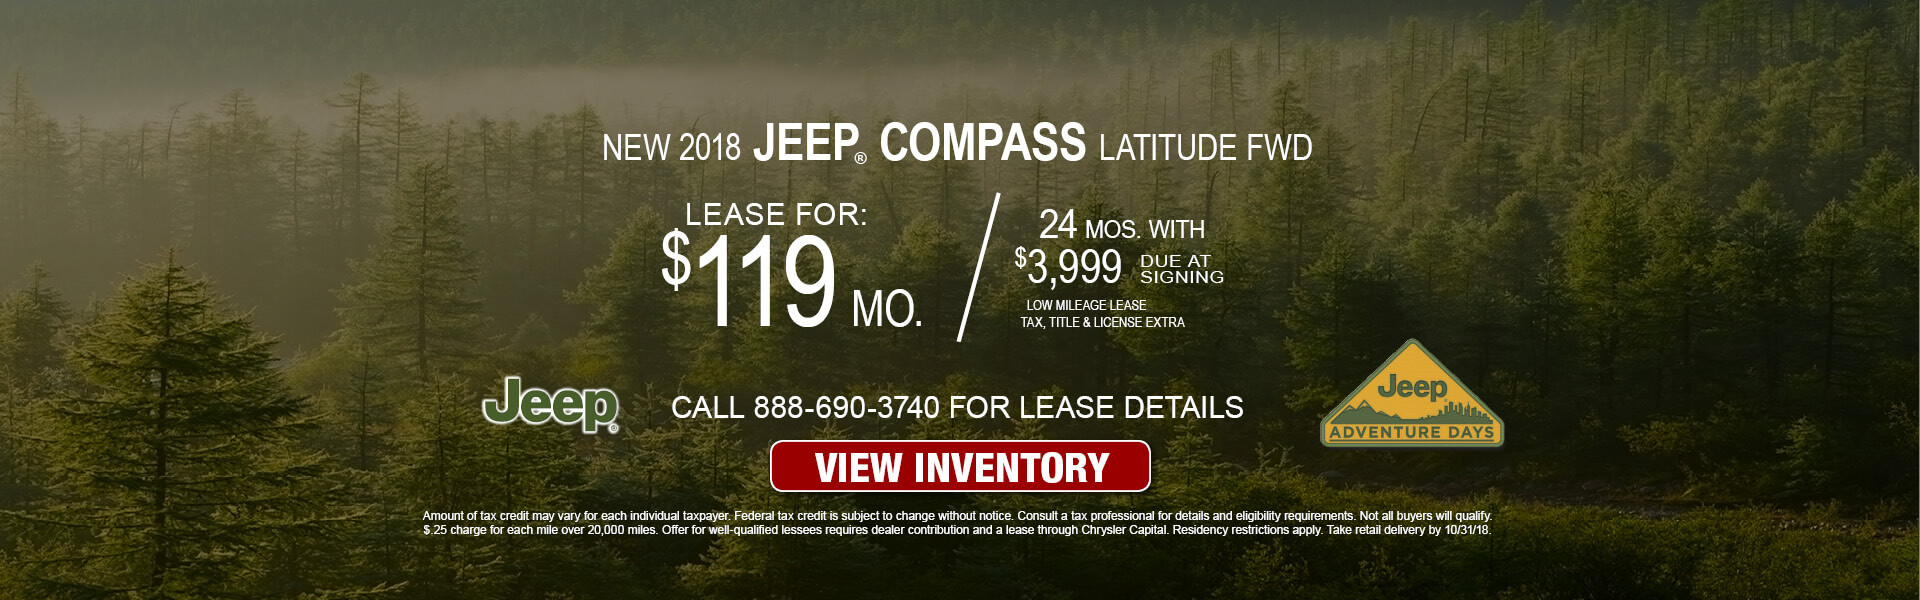 Jeep Compass $119 Lease